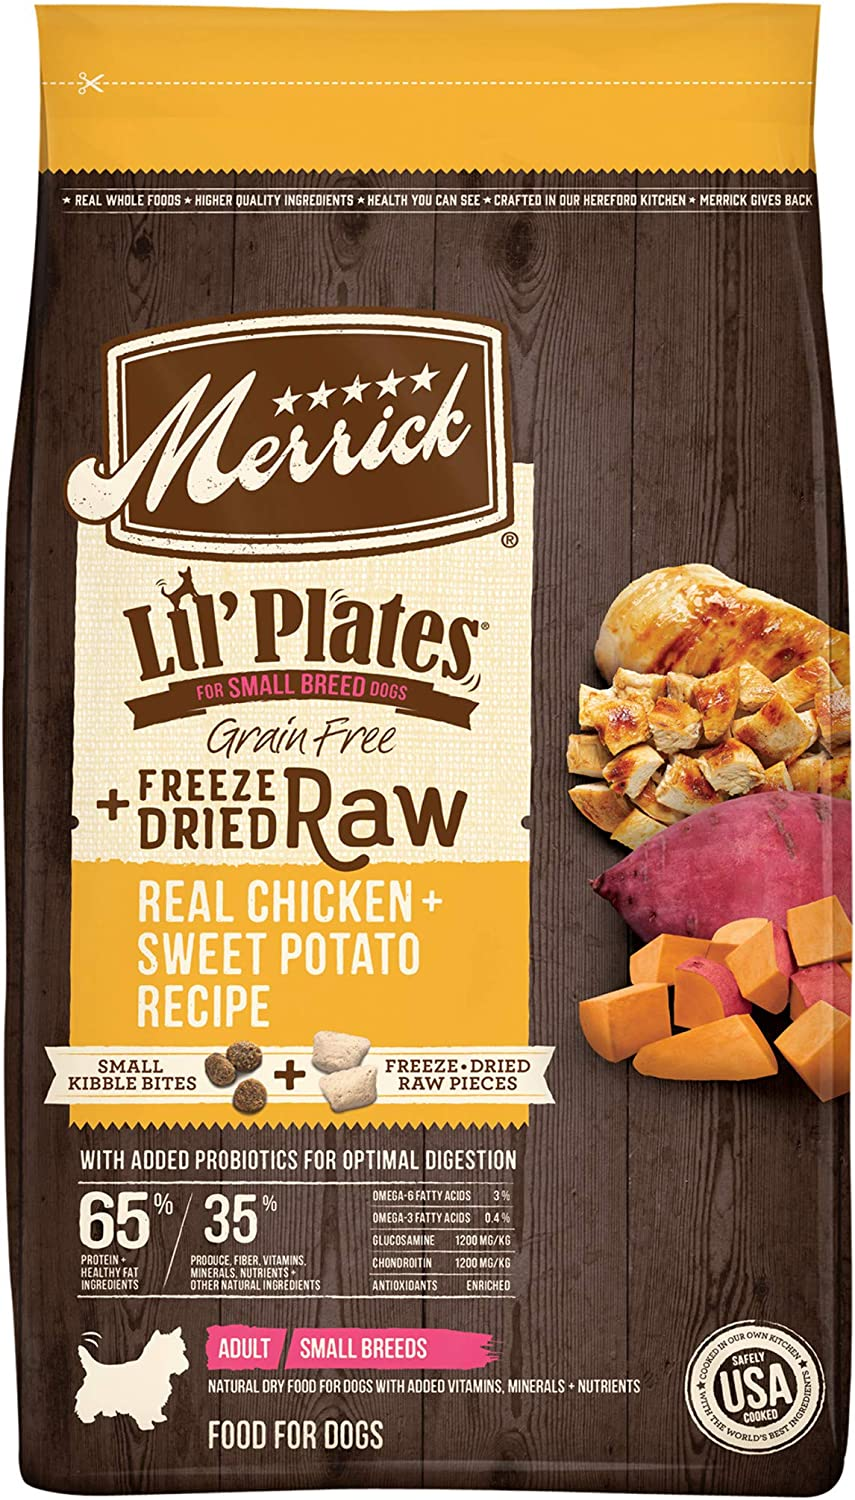 Merrick Lil Plates Grain Free Small Breed Freeze Dried Raw Bites Dry Dog with Real Meat